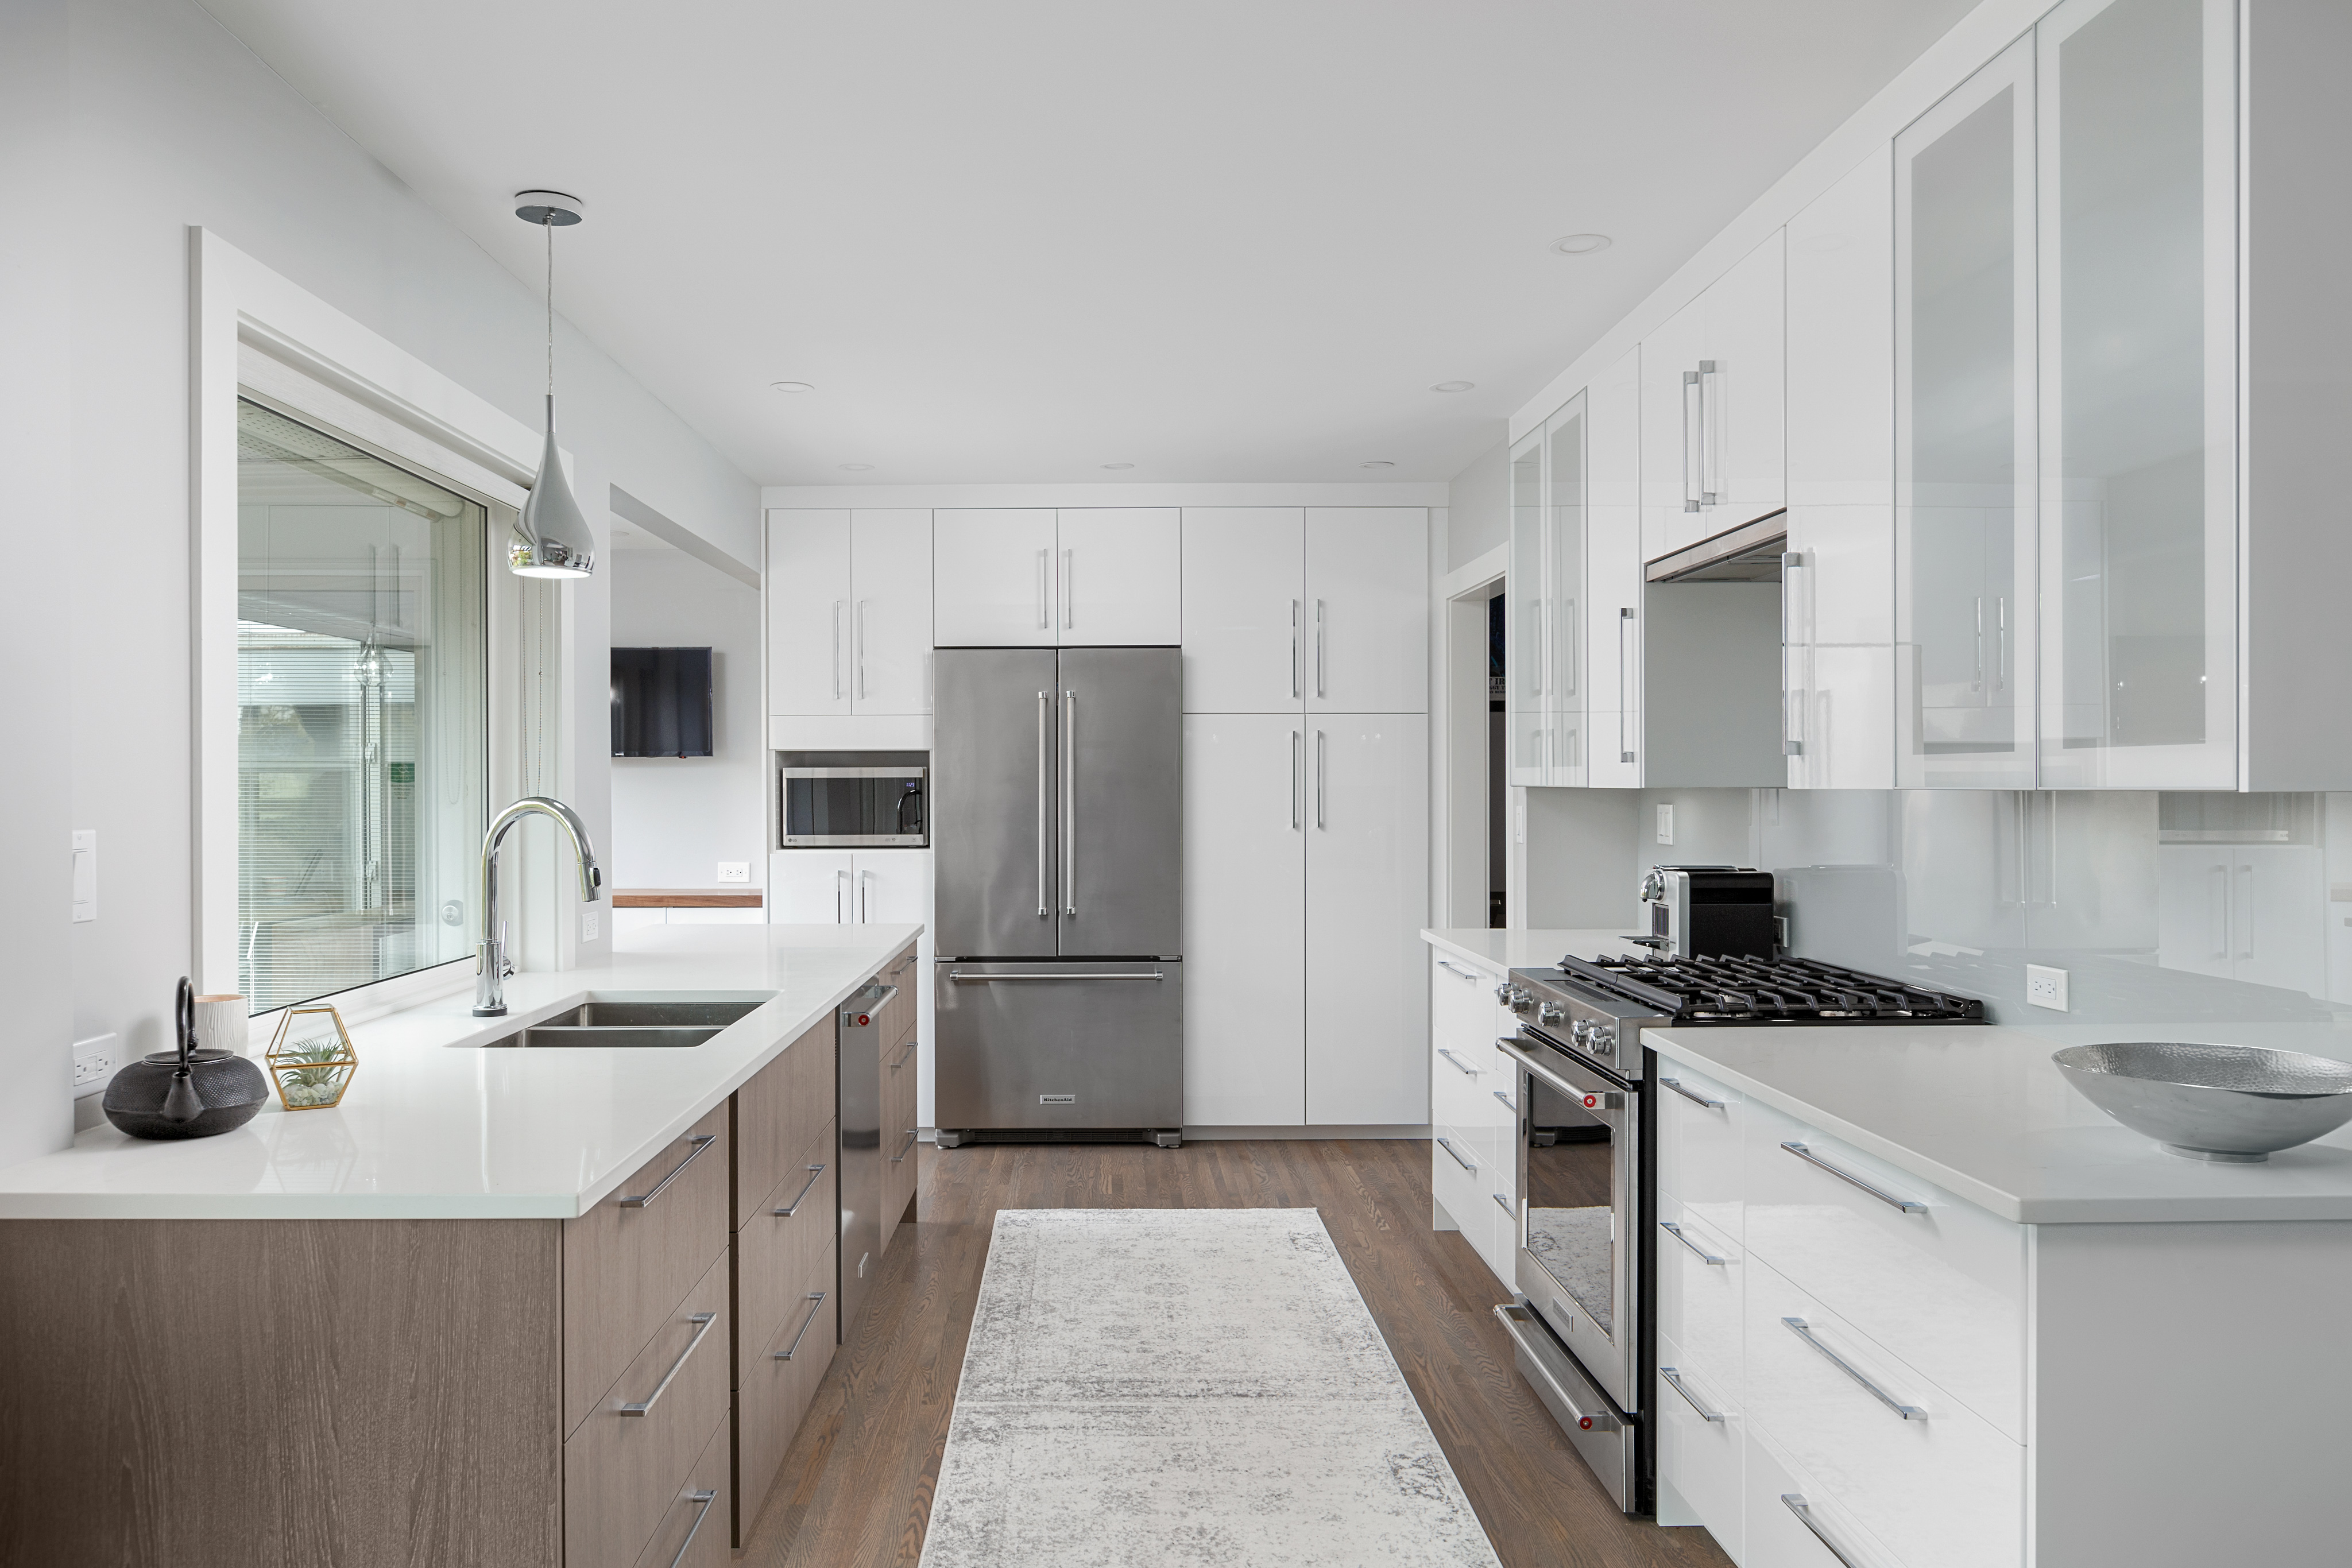 Contemporary Kitchen Remodel – Before and After